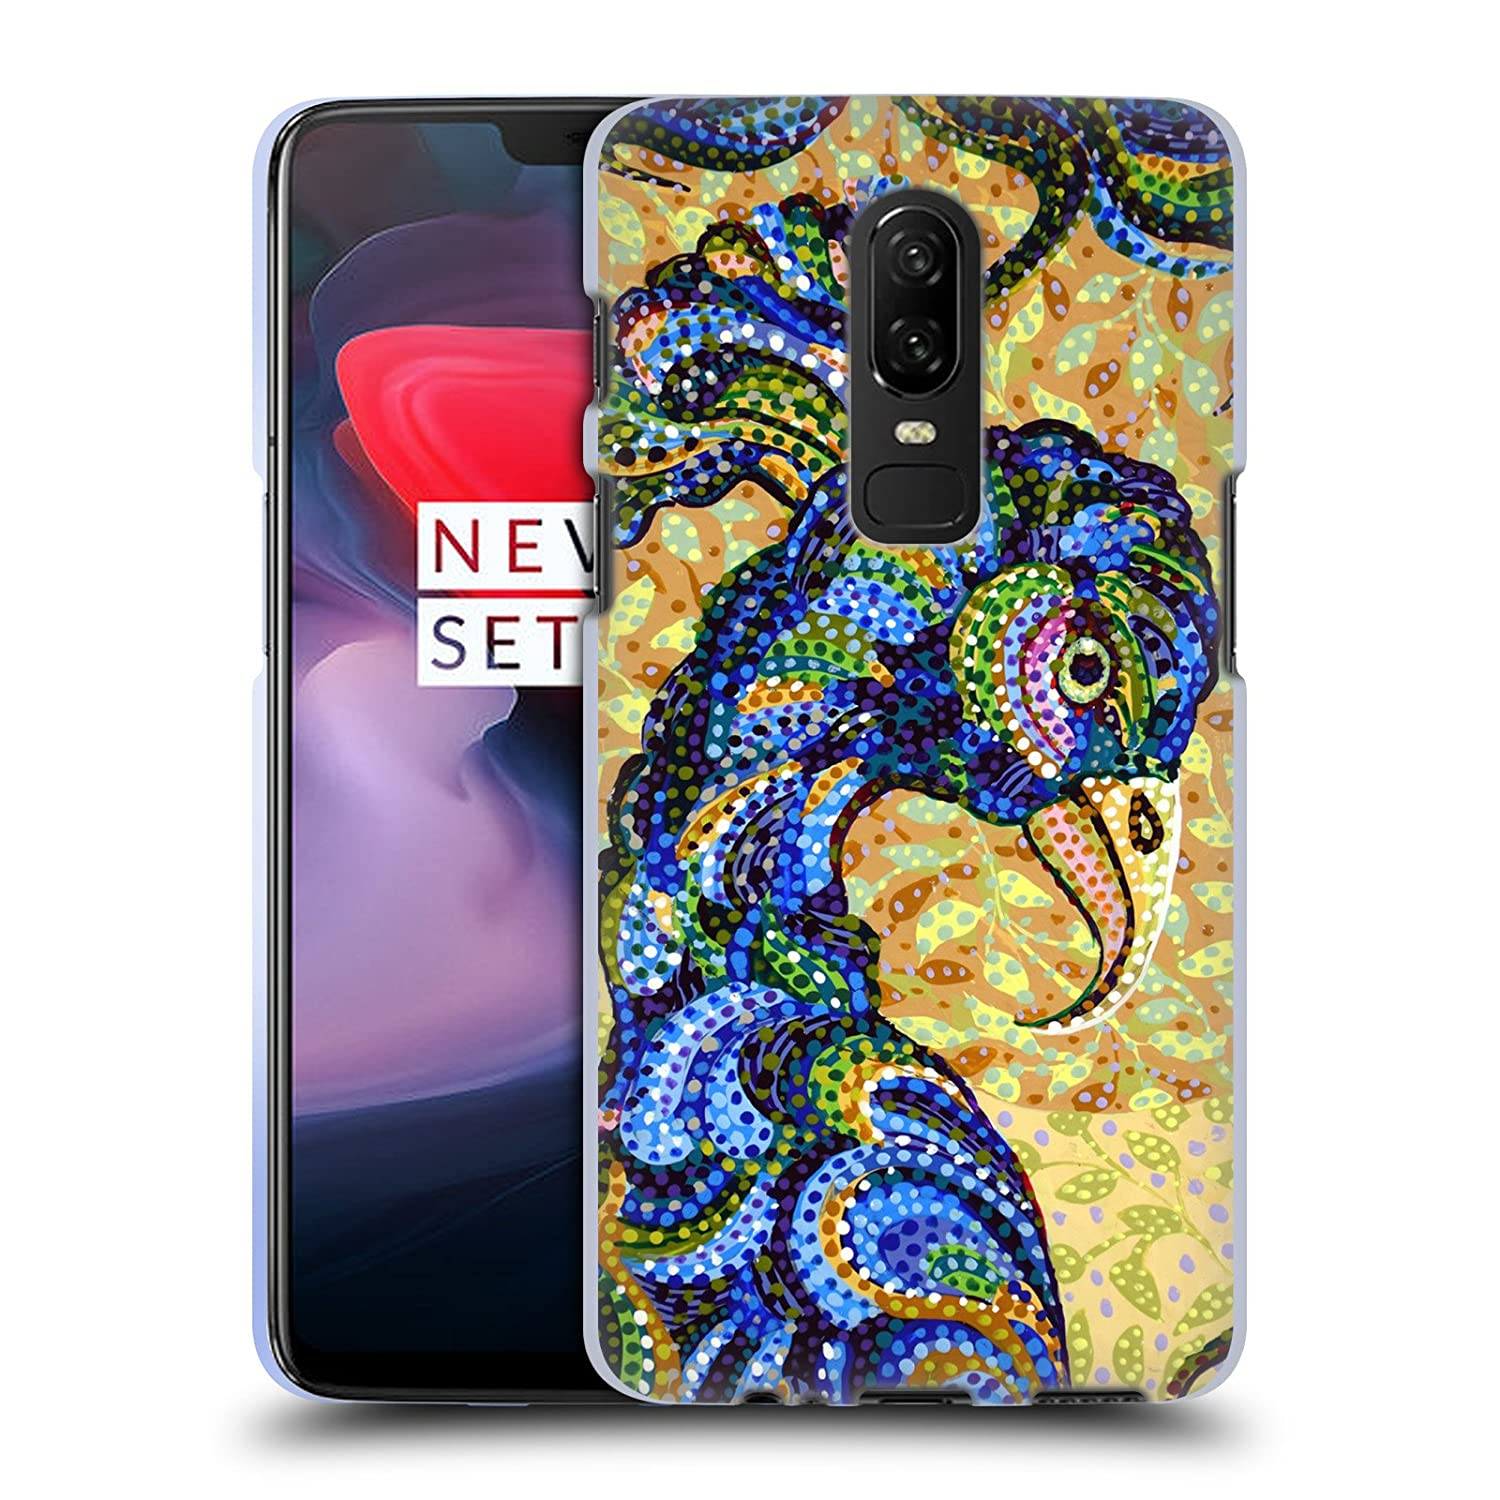 Amazon Official Erika Pochybova Parrot Birds Soft Gel Case For OnePlus 6 Cell Phones Accessories